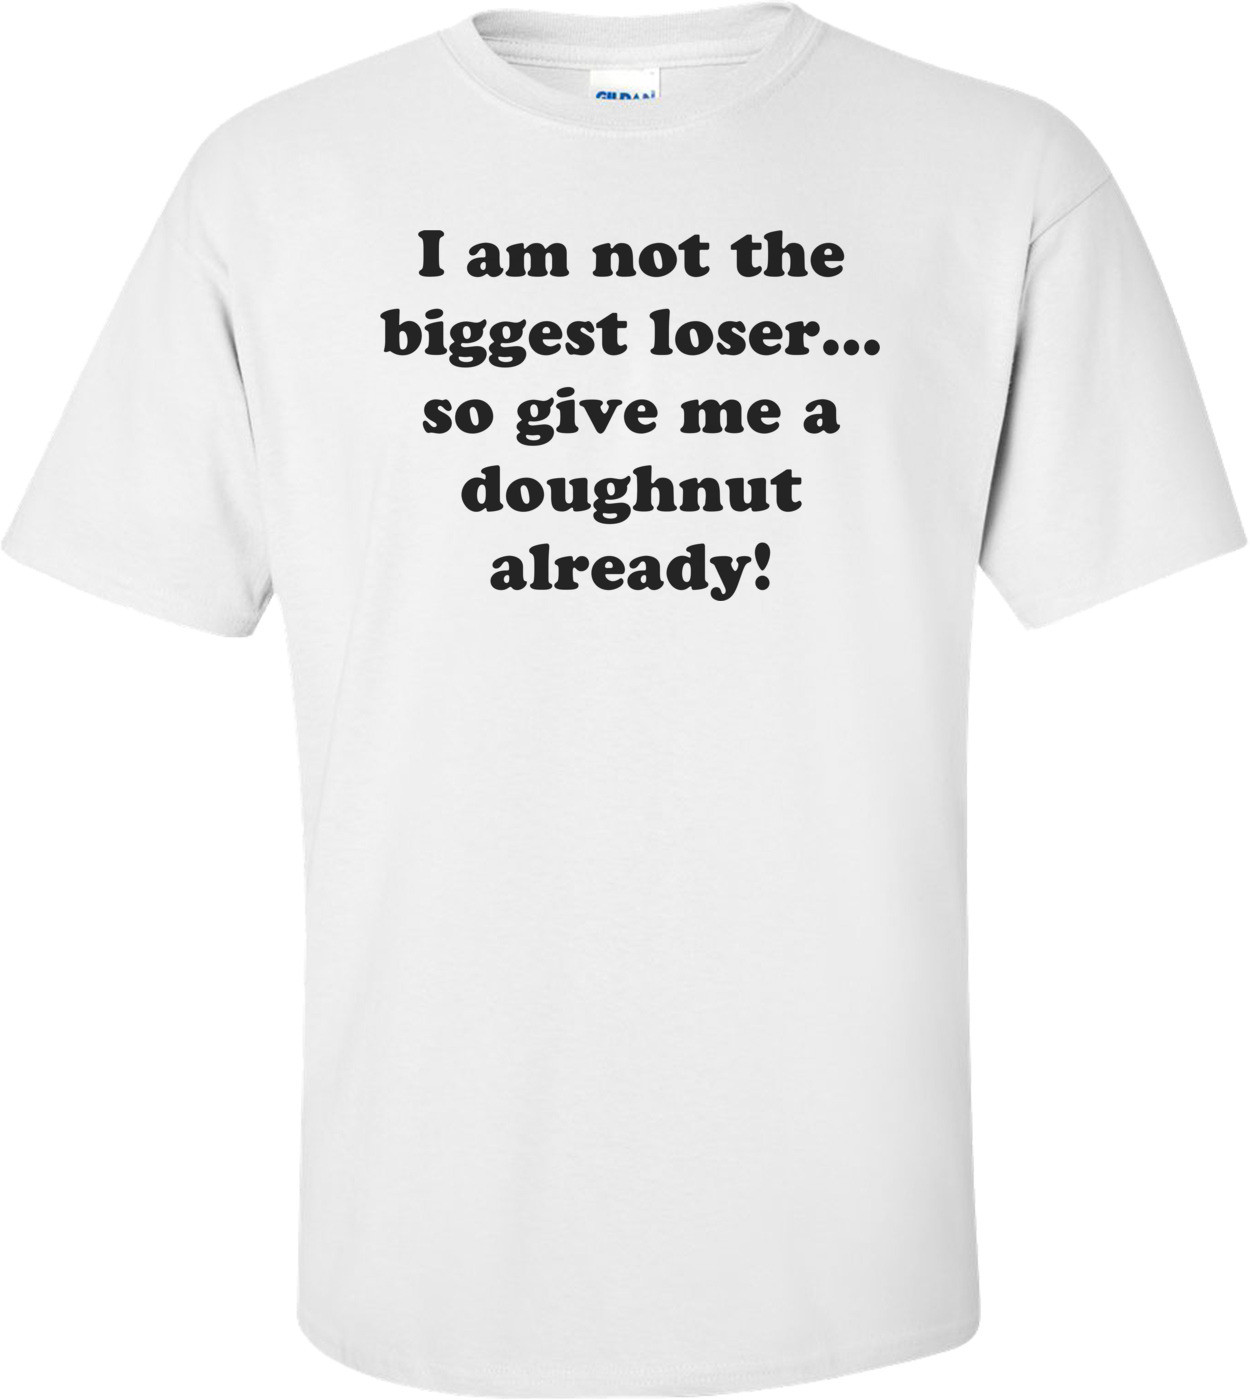 I am not the biggest loser... so give me a doughnut already! Shirt